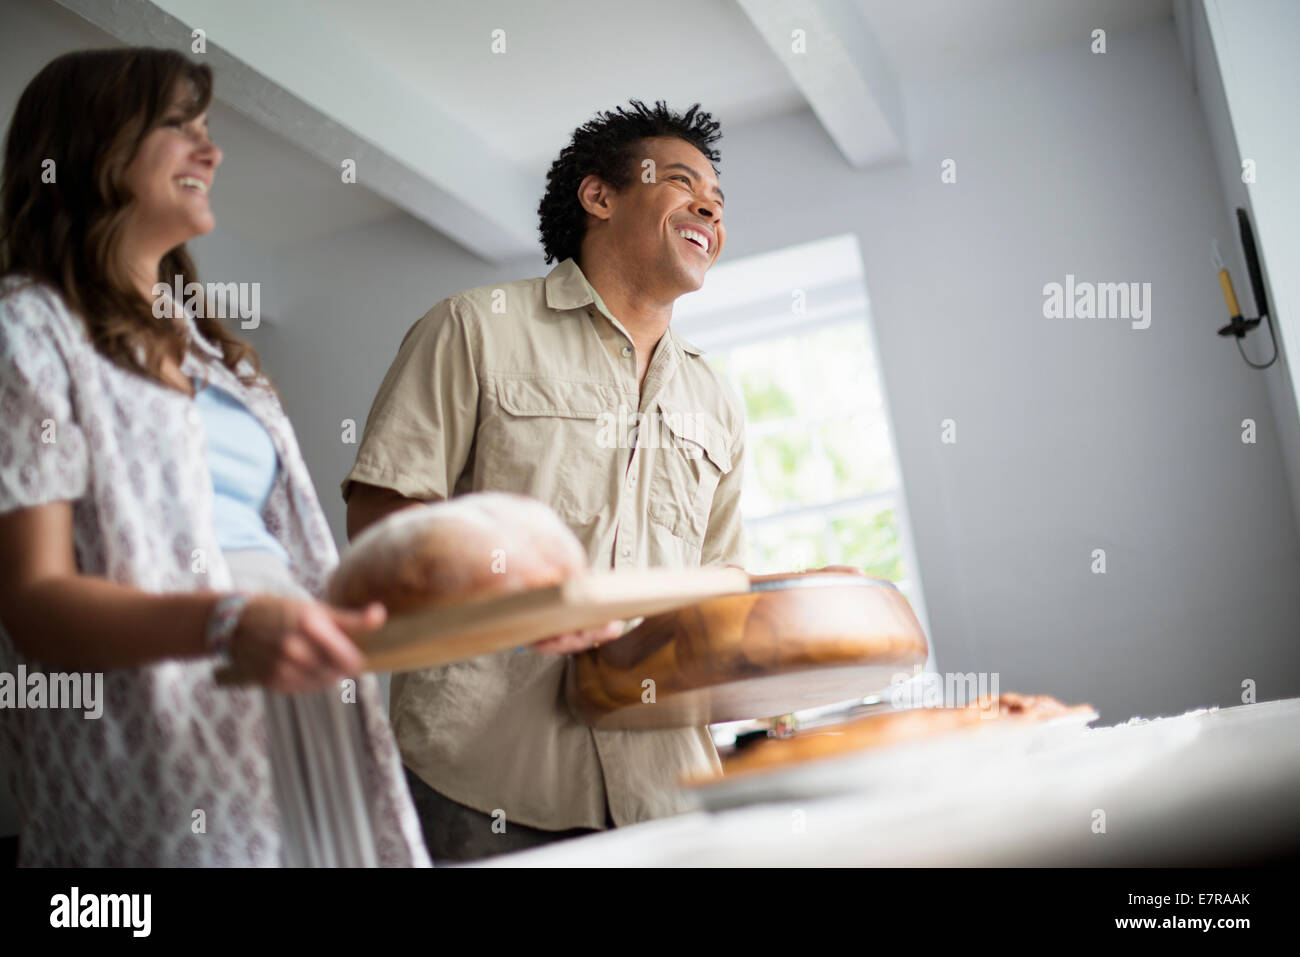 A family gathering for a meal. Food being carried to a table. - Stock Image